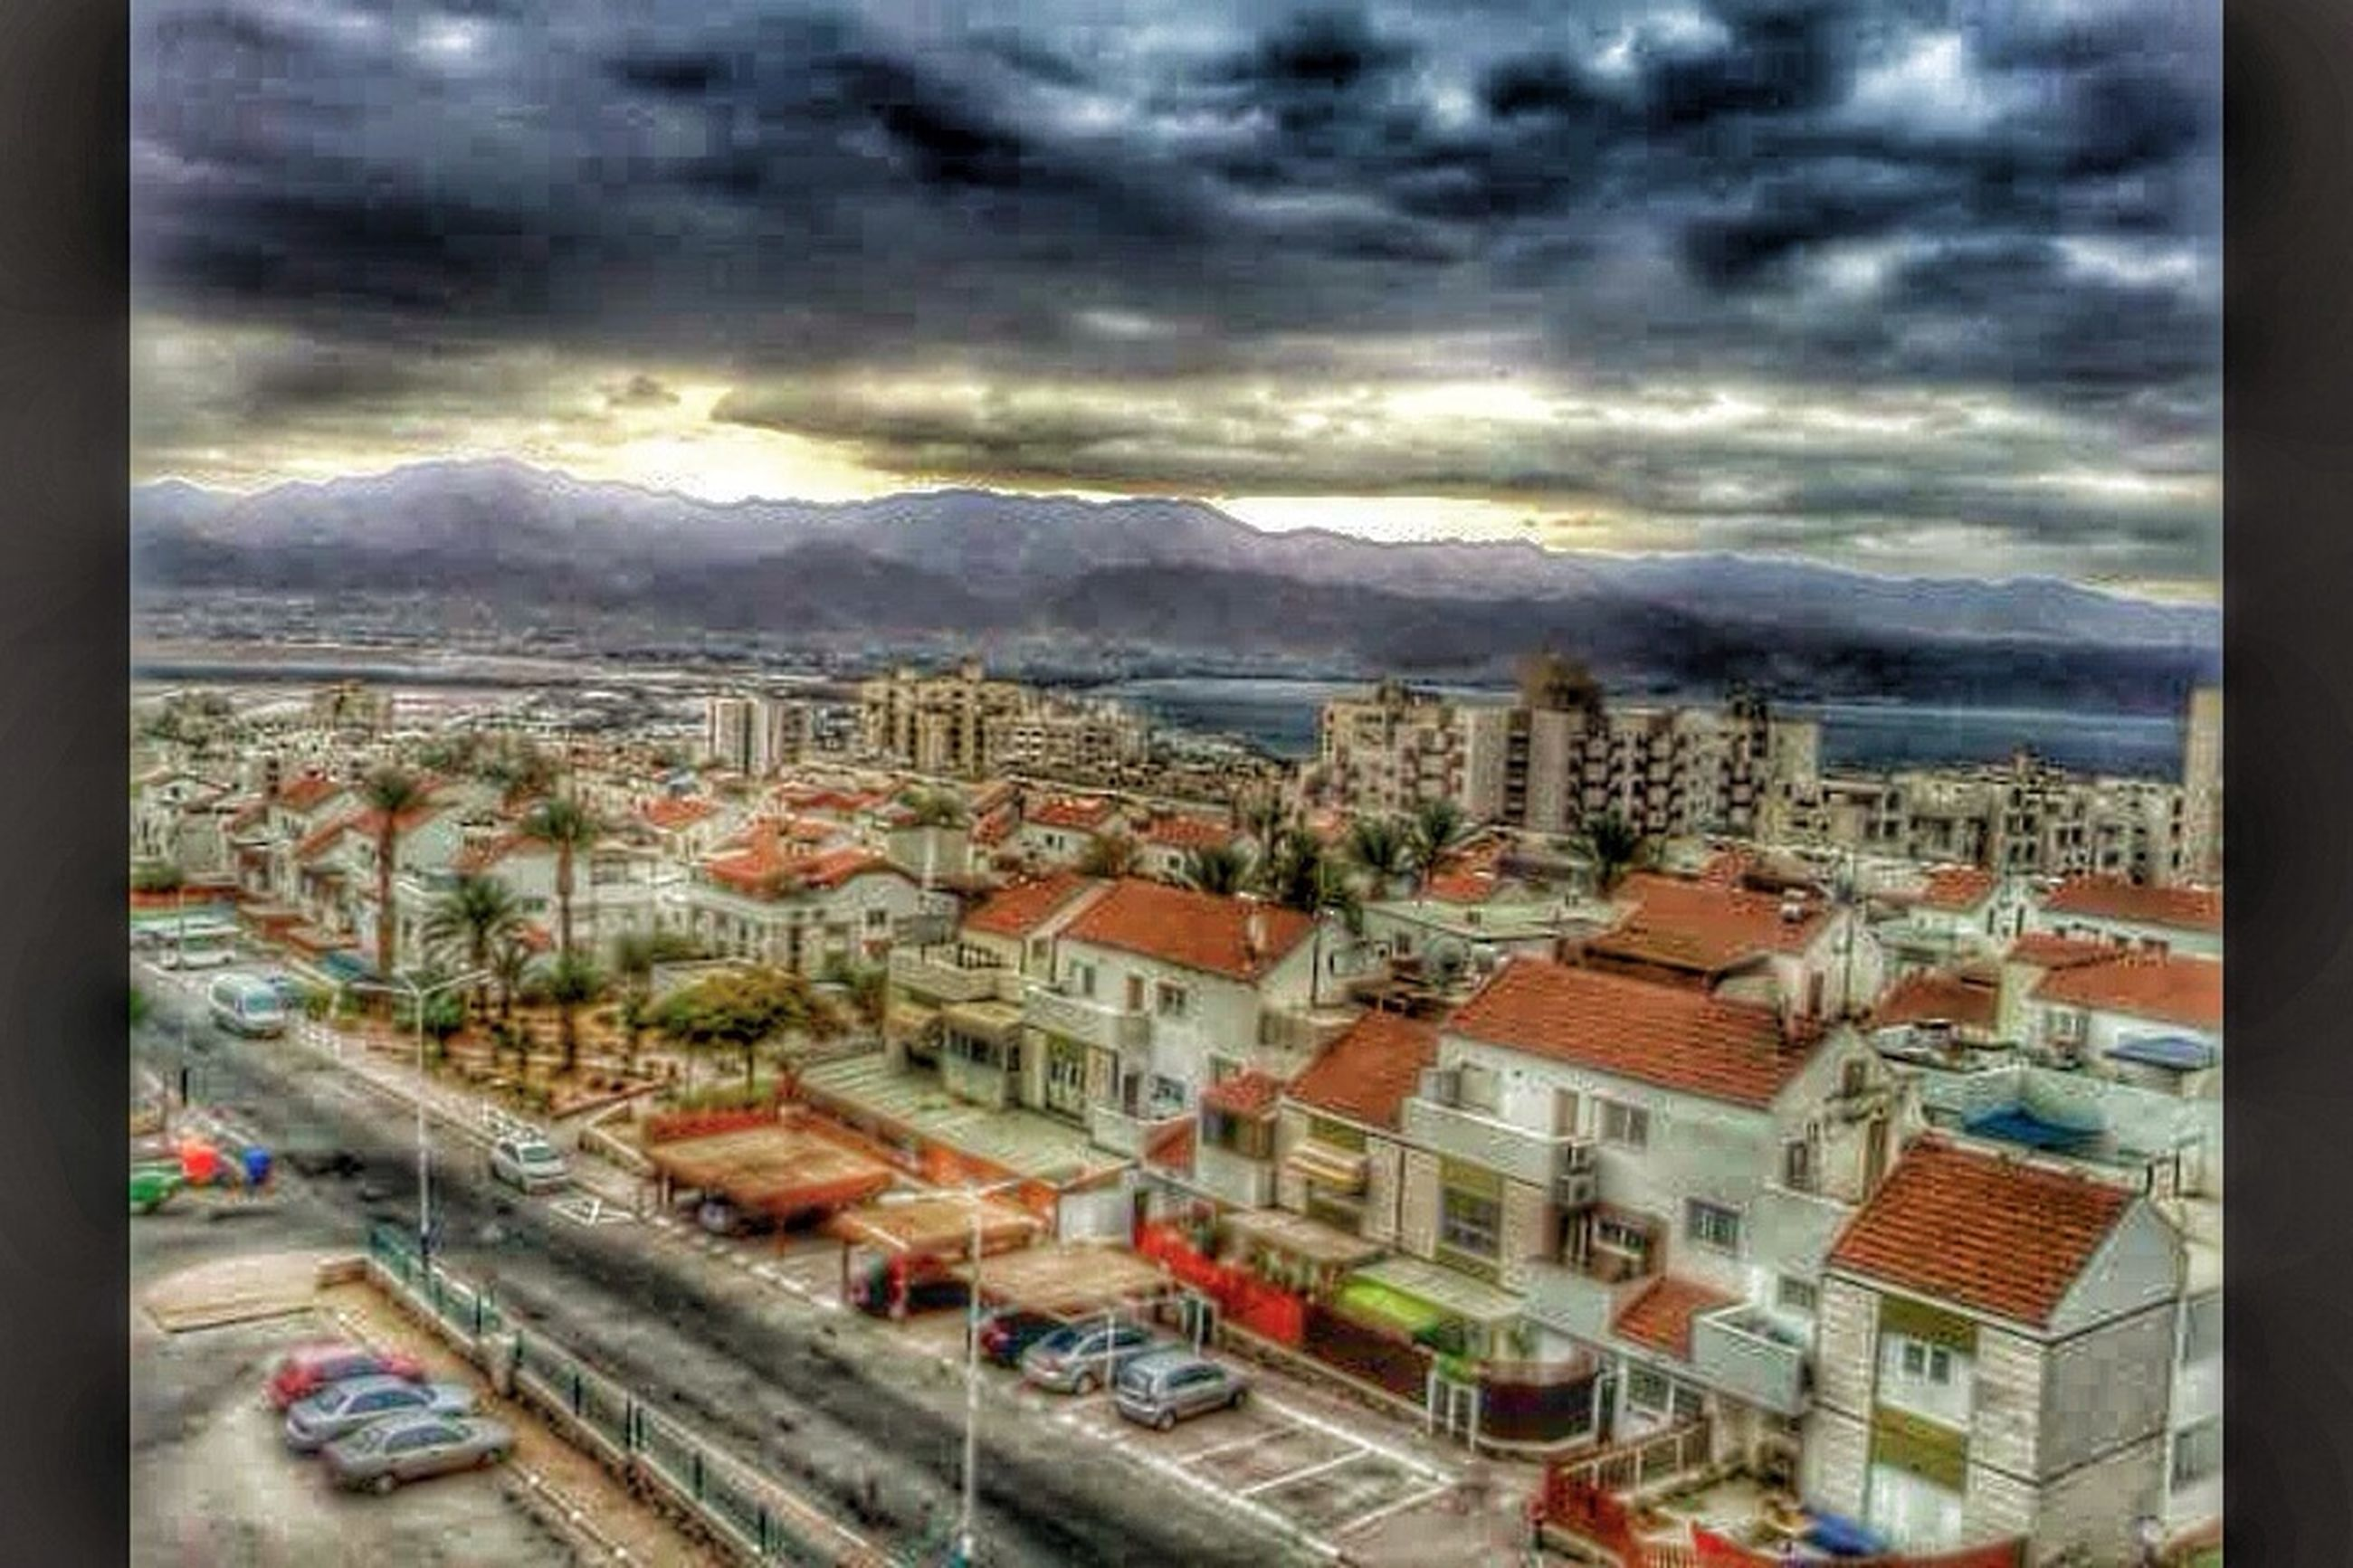 building exterior, sky, architecture, cloud - sky, built structure, city, cityscape, cloudy, mountain, residential district, residential structure, residential building, cloud, crowded, high angle view, townscape, sunset, town, house, car